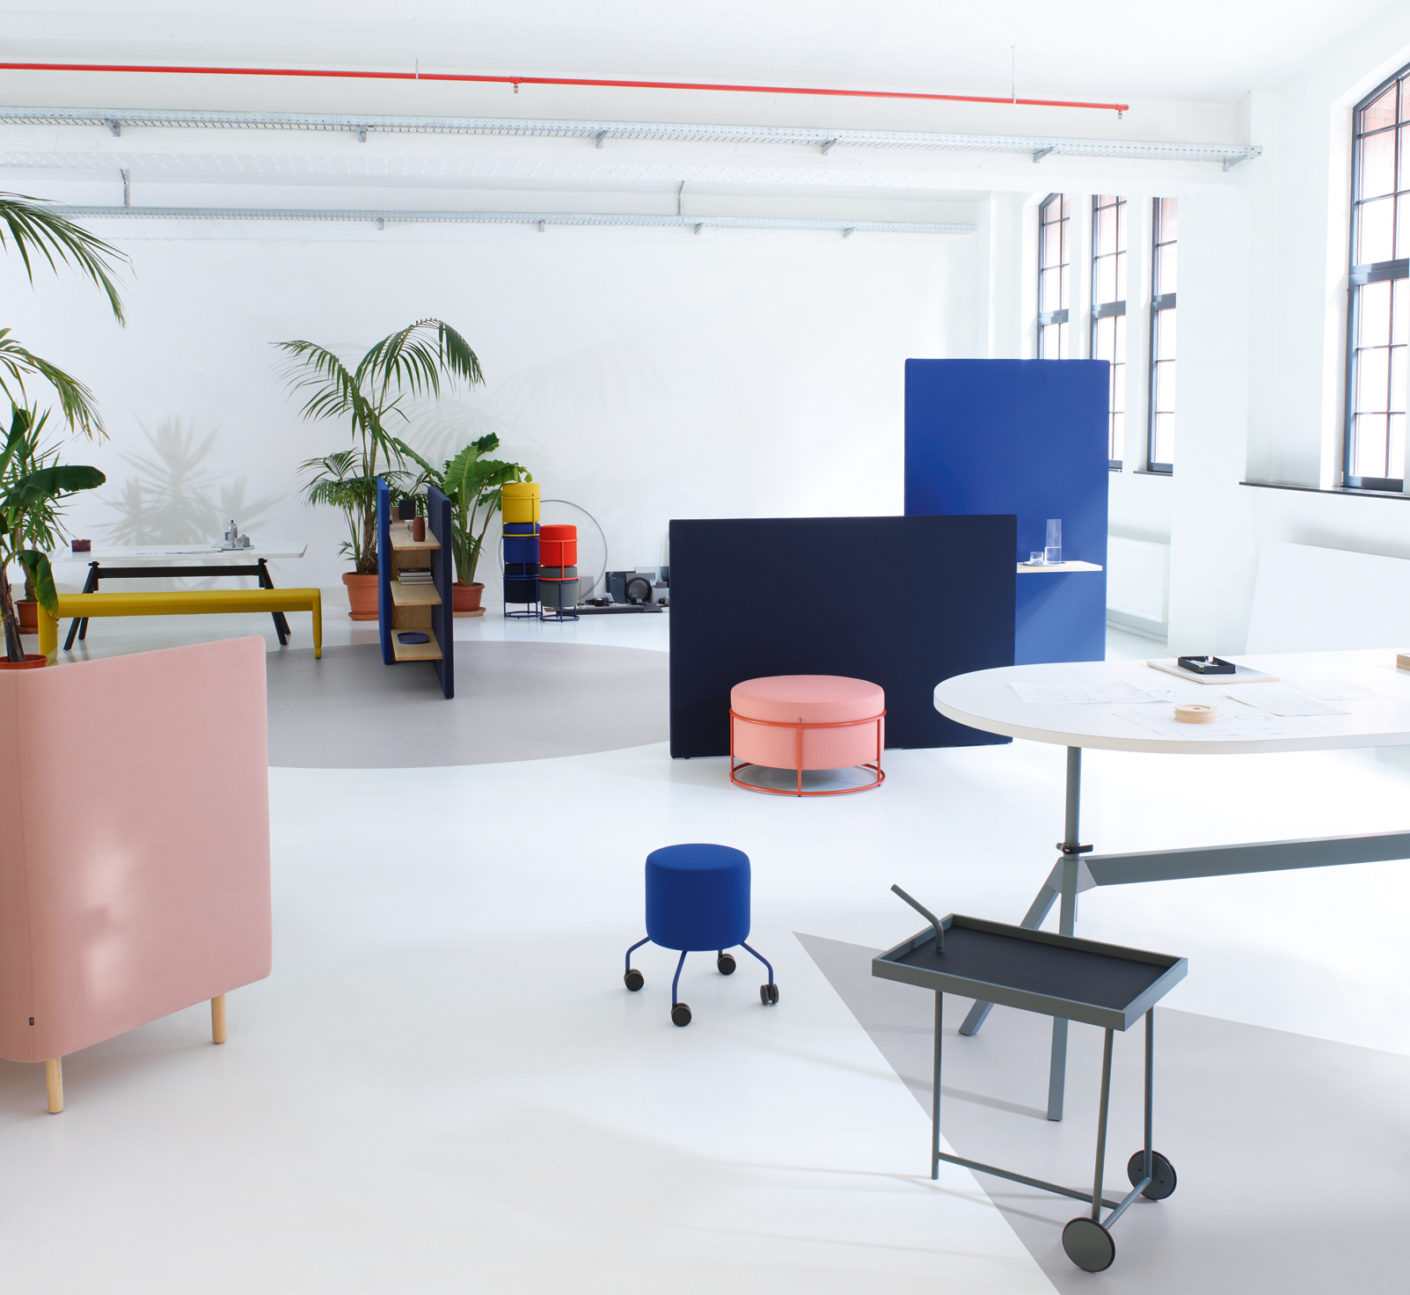 For the seemingly homey zones within the office the designers developed furniture – these can now be playfully combined and fit both worlds.